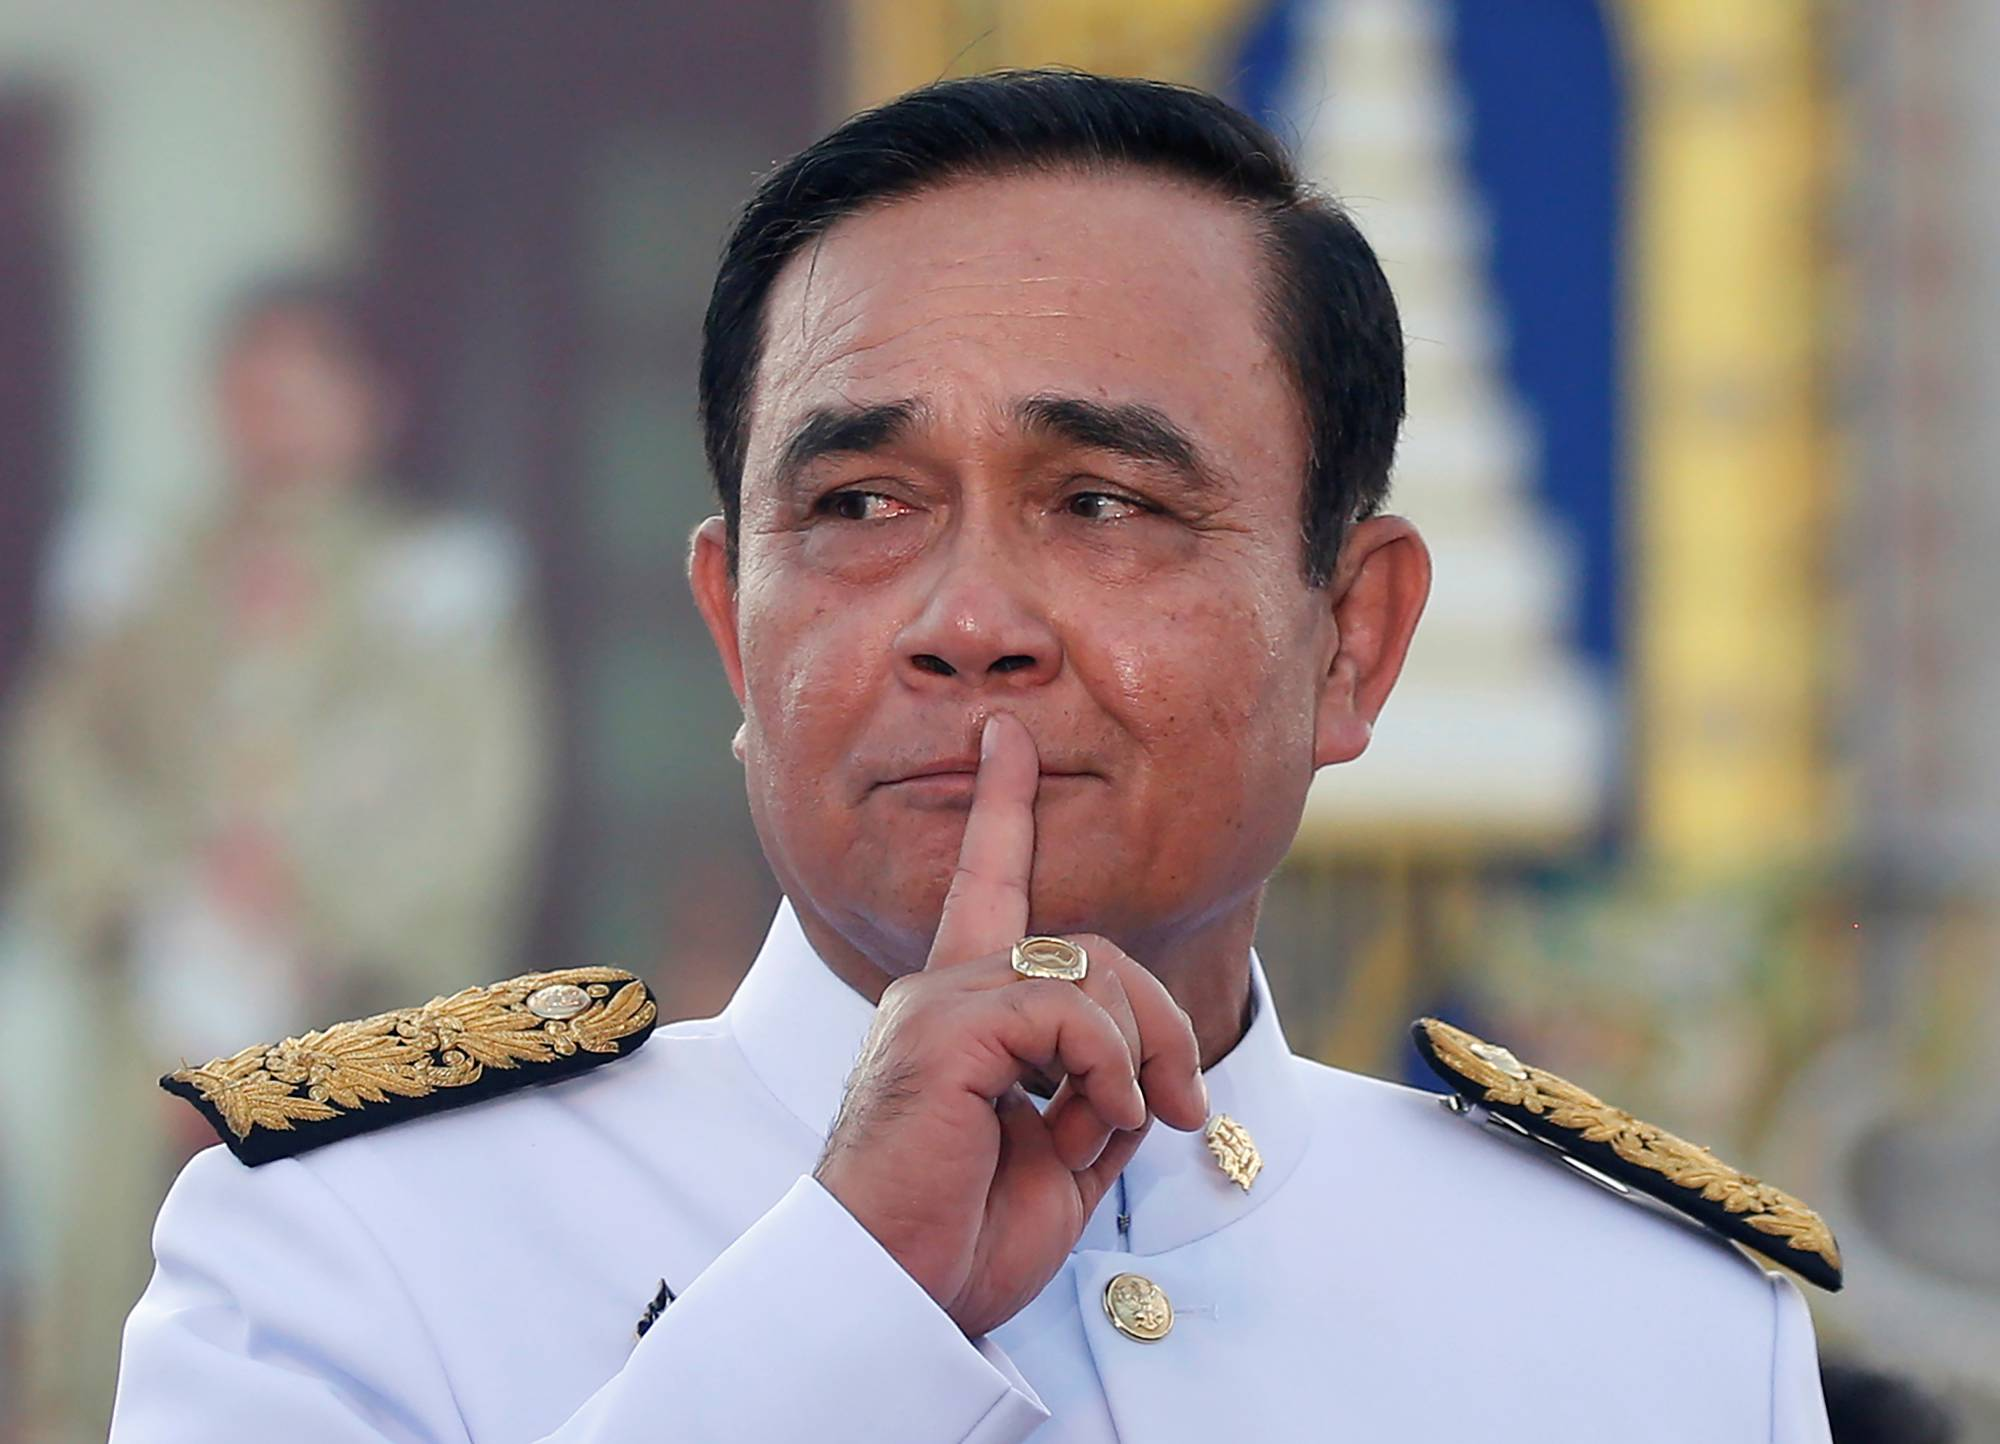 Thai Prime Minister Prayut Chan-ocha reacts while taking questions from journalists in Bangkok last year.  | REUTERS